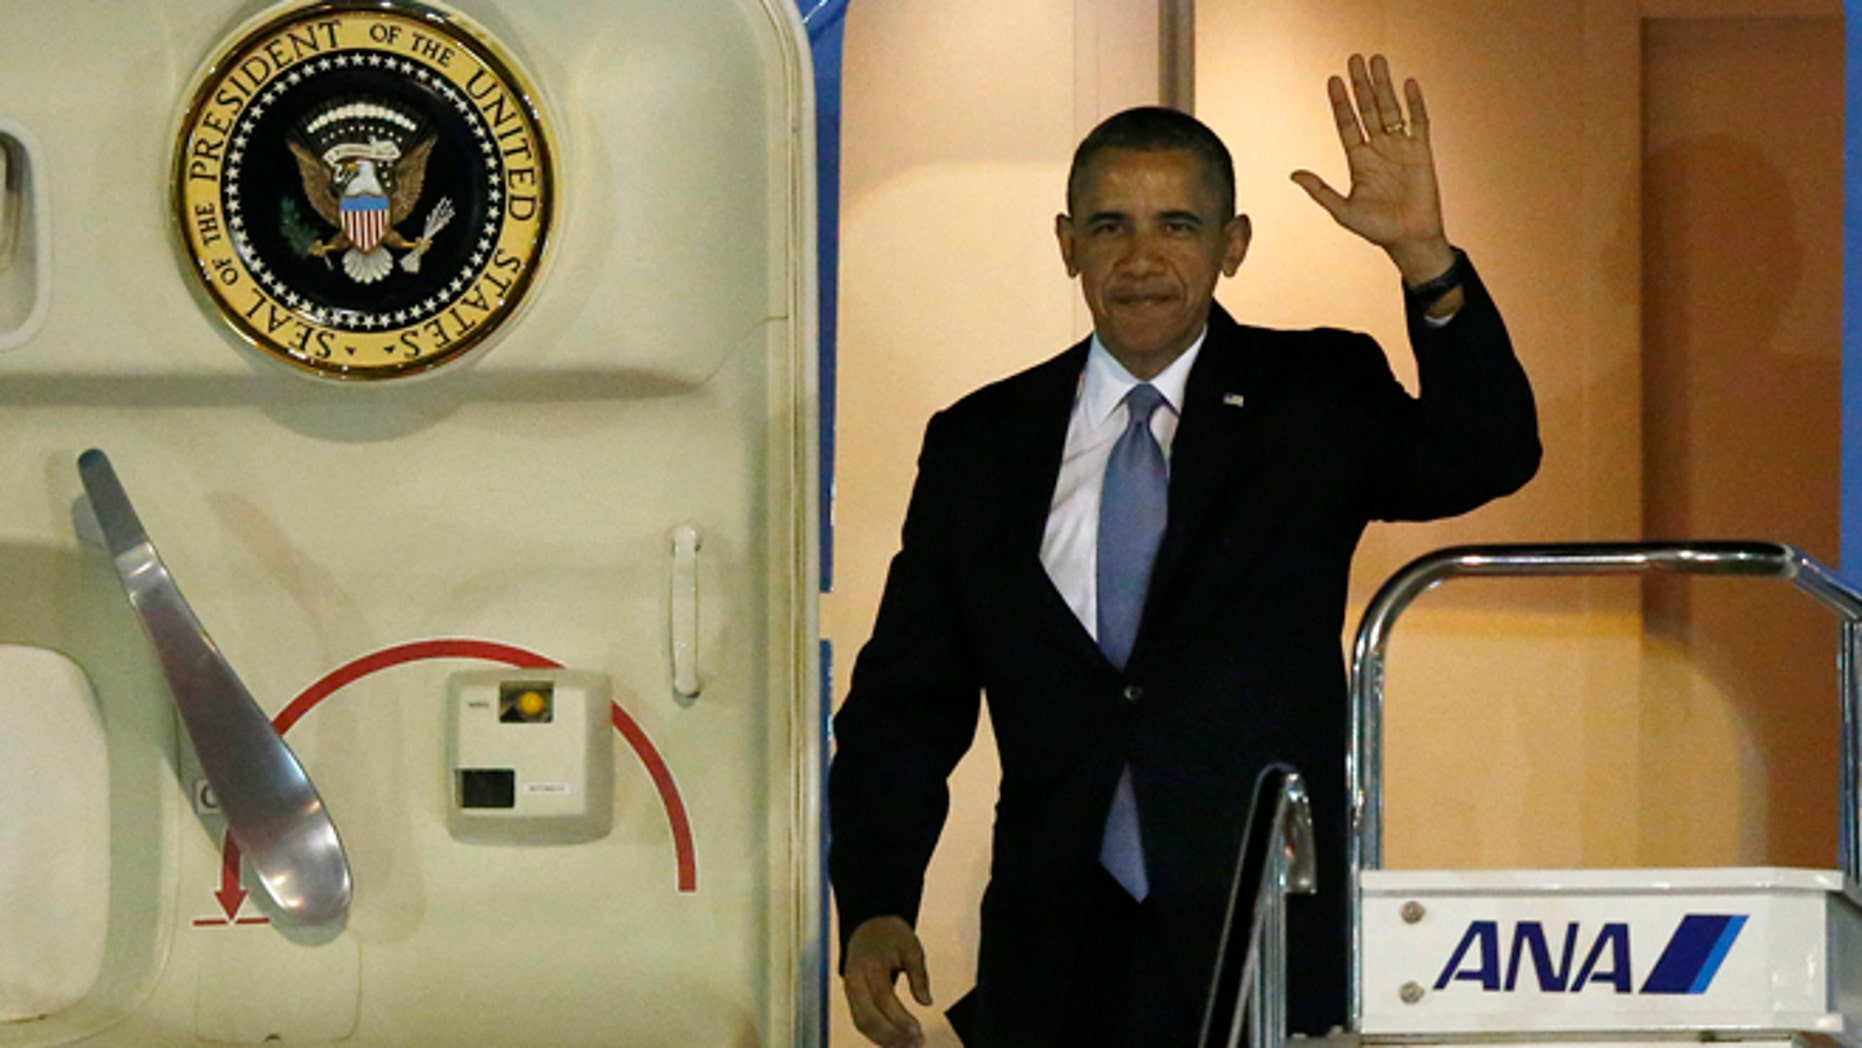 April 23: President Obama steps out from Air Force One as he arrives at Haneda International Airport in Tokyo.